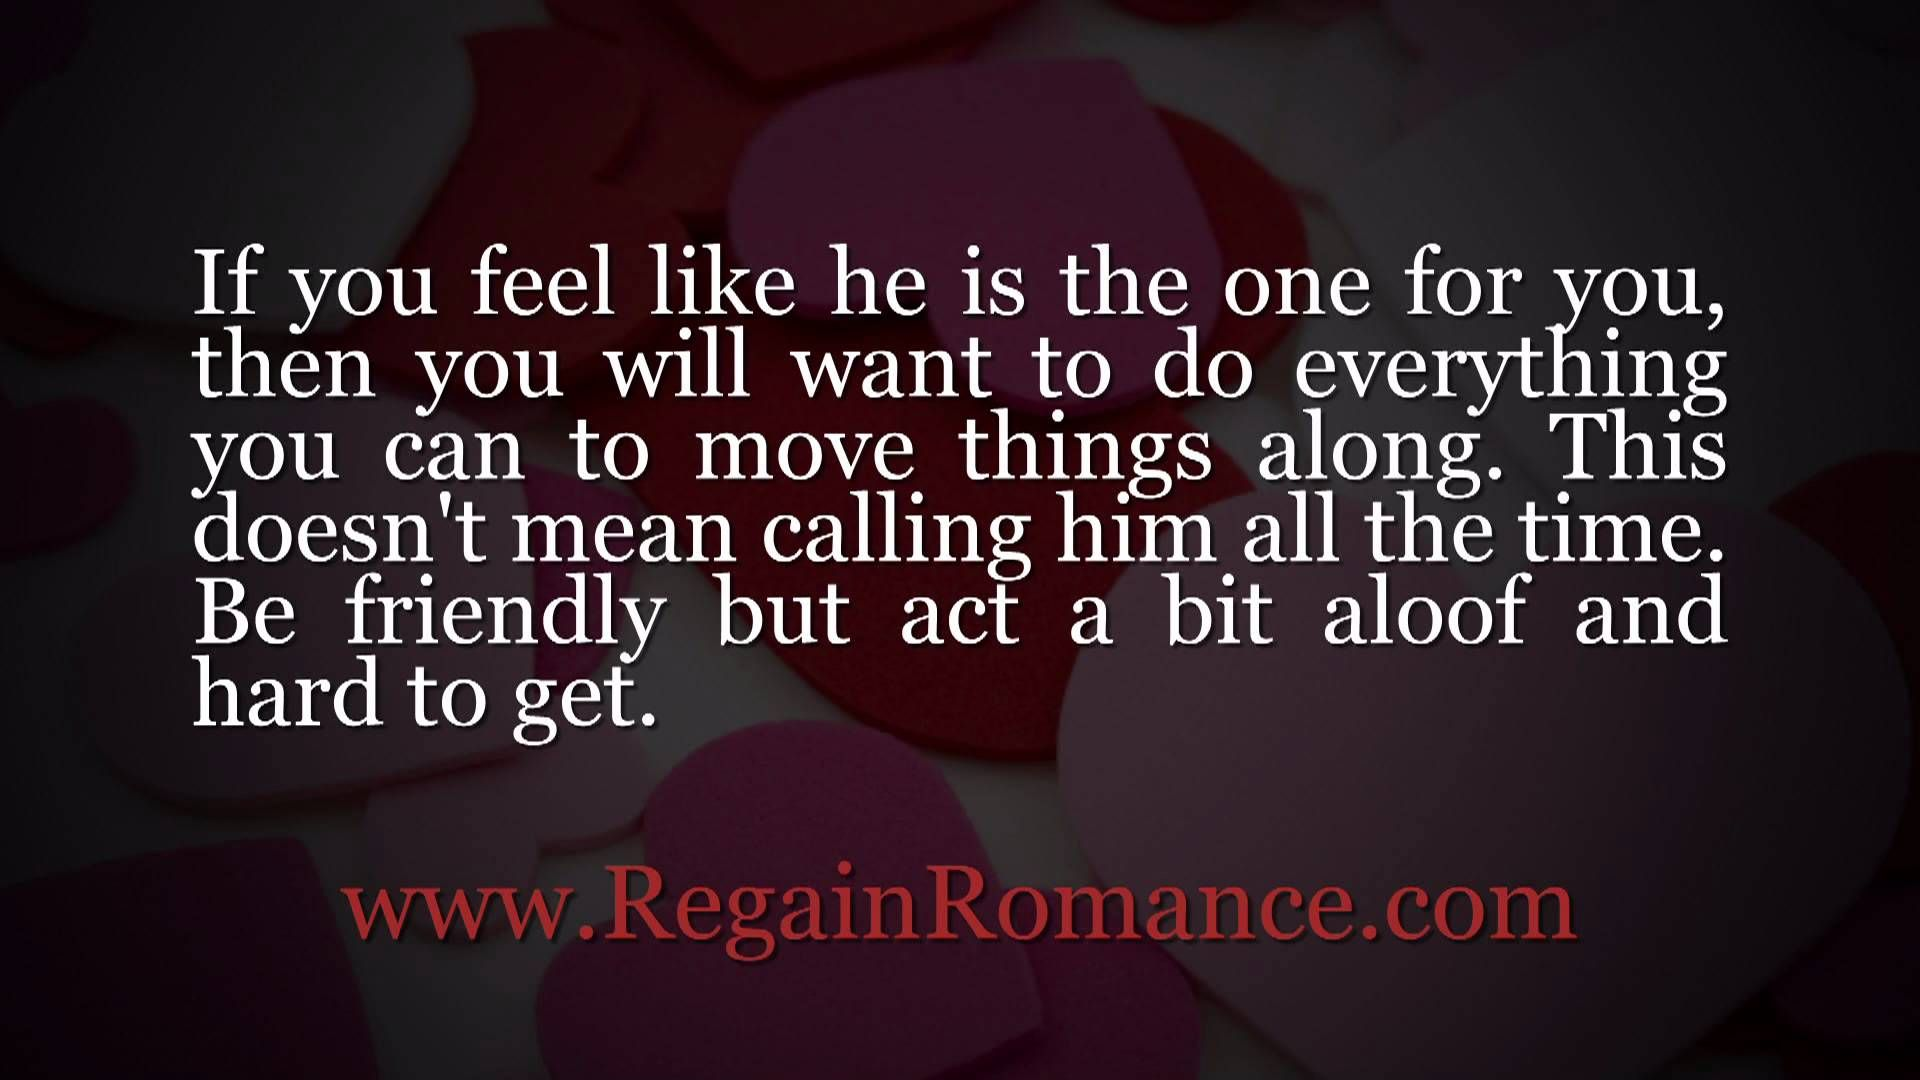 Love Quotes For Your Boyfriend Pinjon Wilson On Quotes  Pinterest  Boyfriends And Famous Quotes